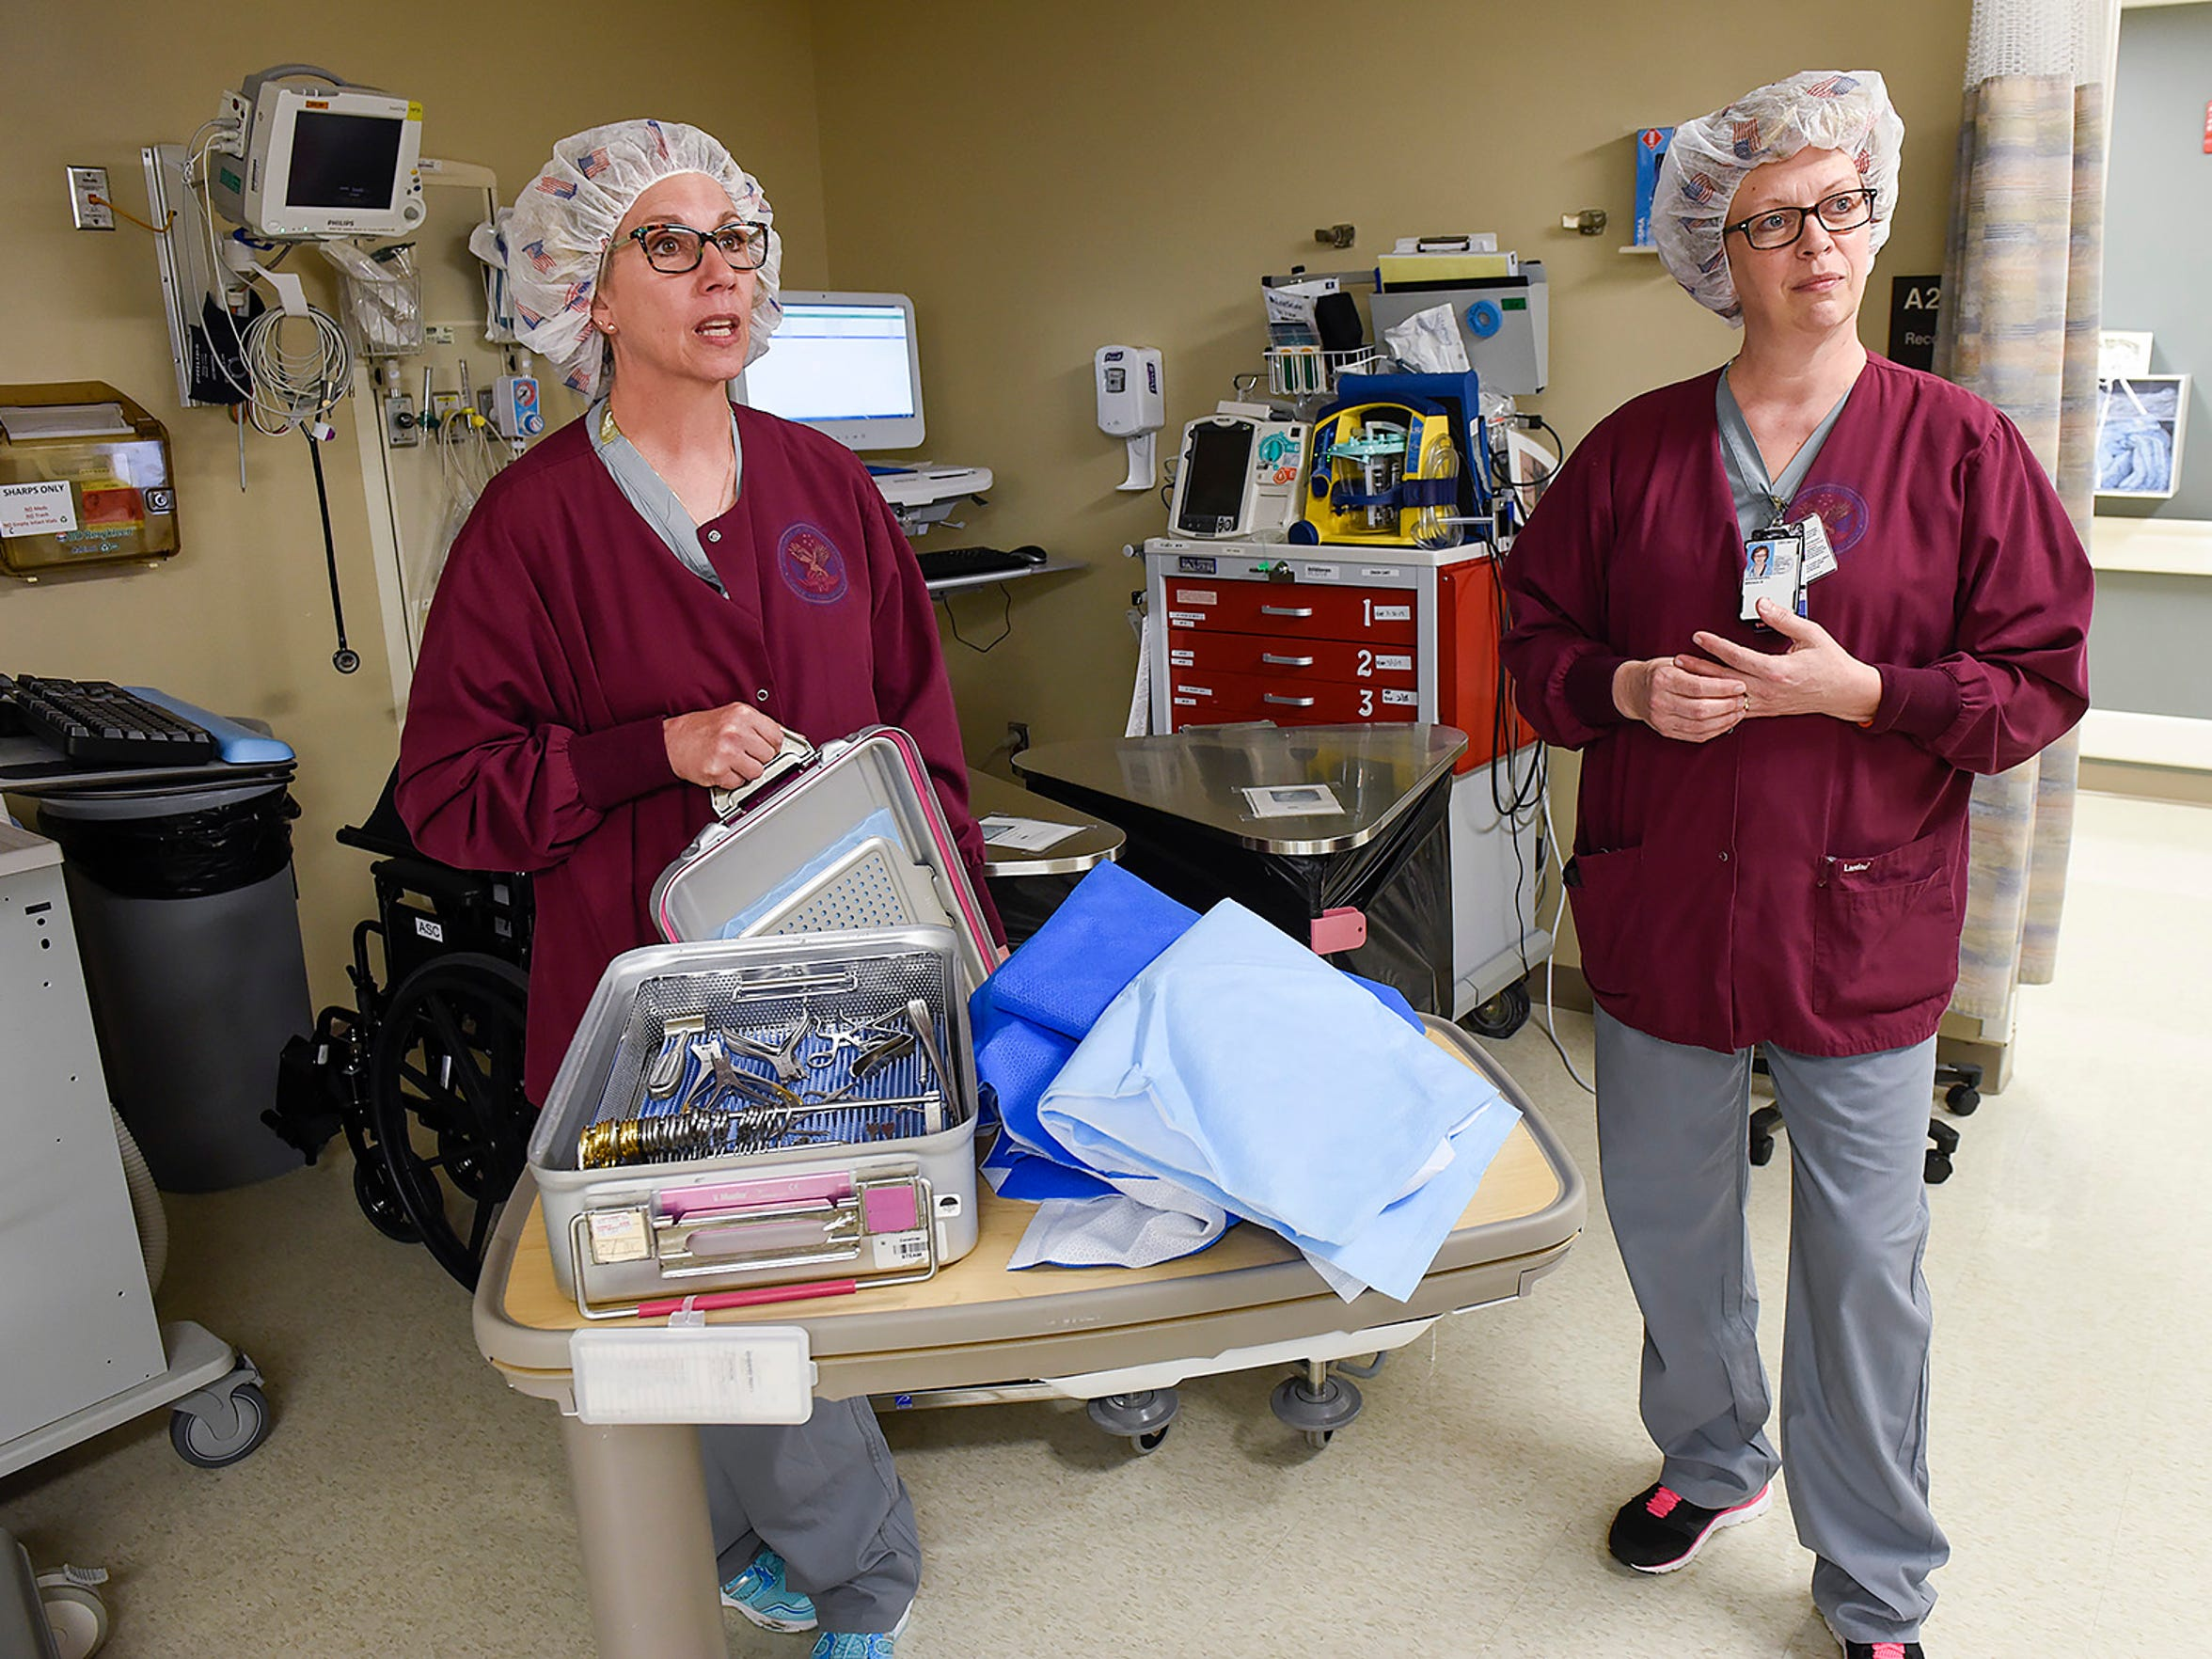 Jody Wessel, certified surgical technician, and Brenda